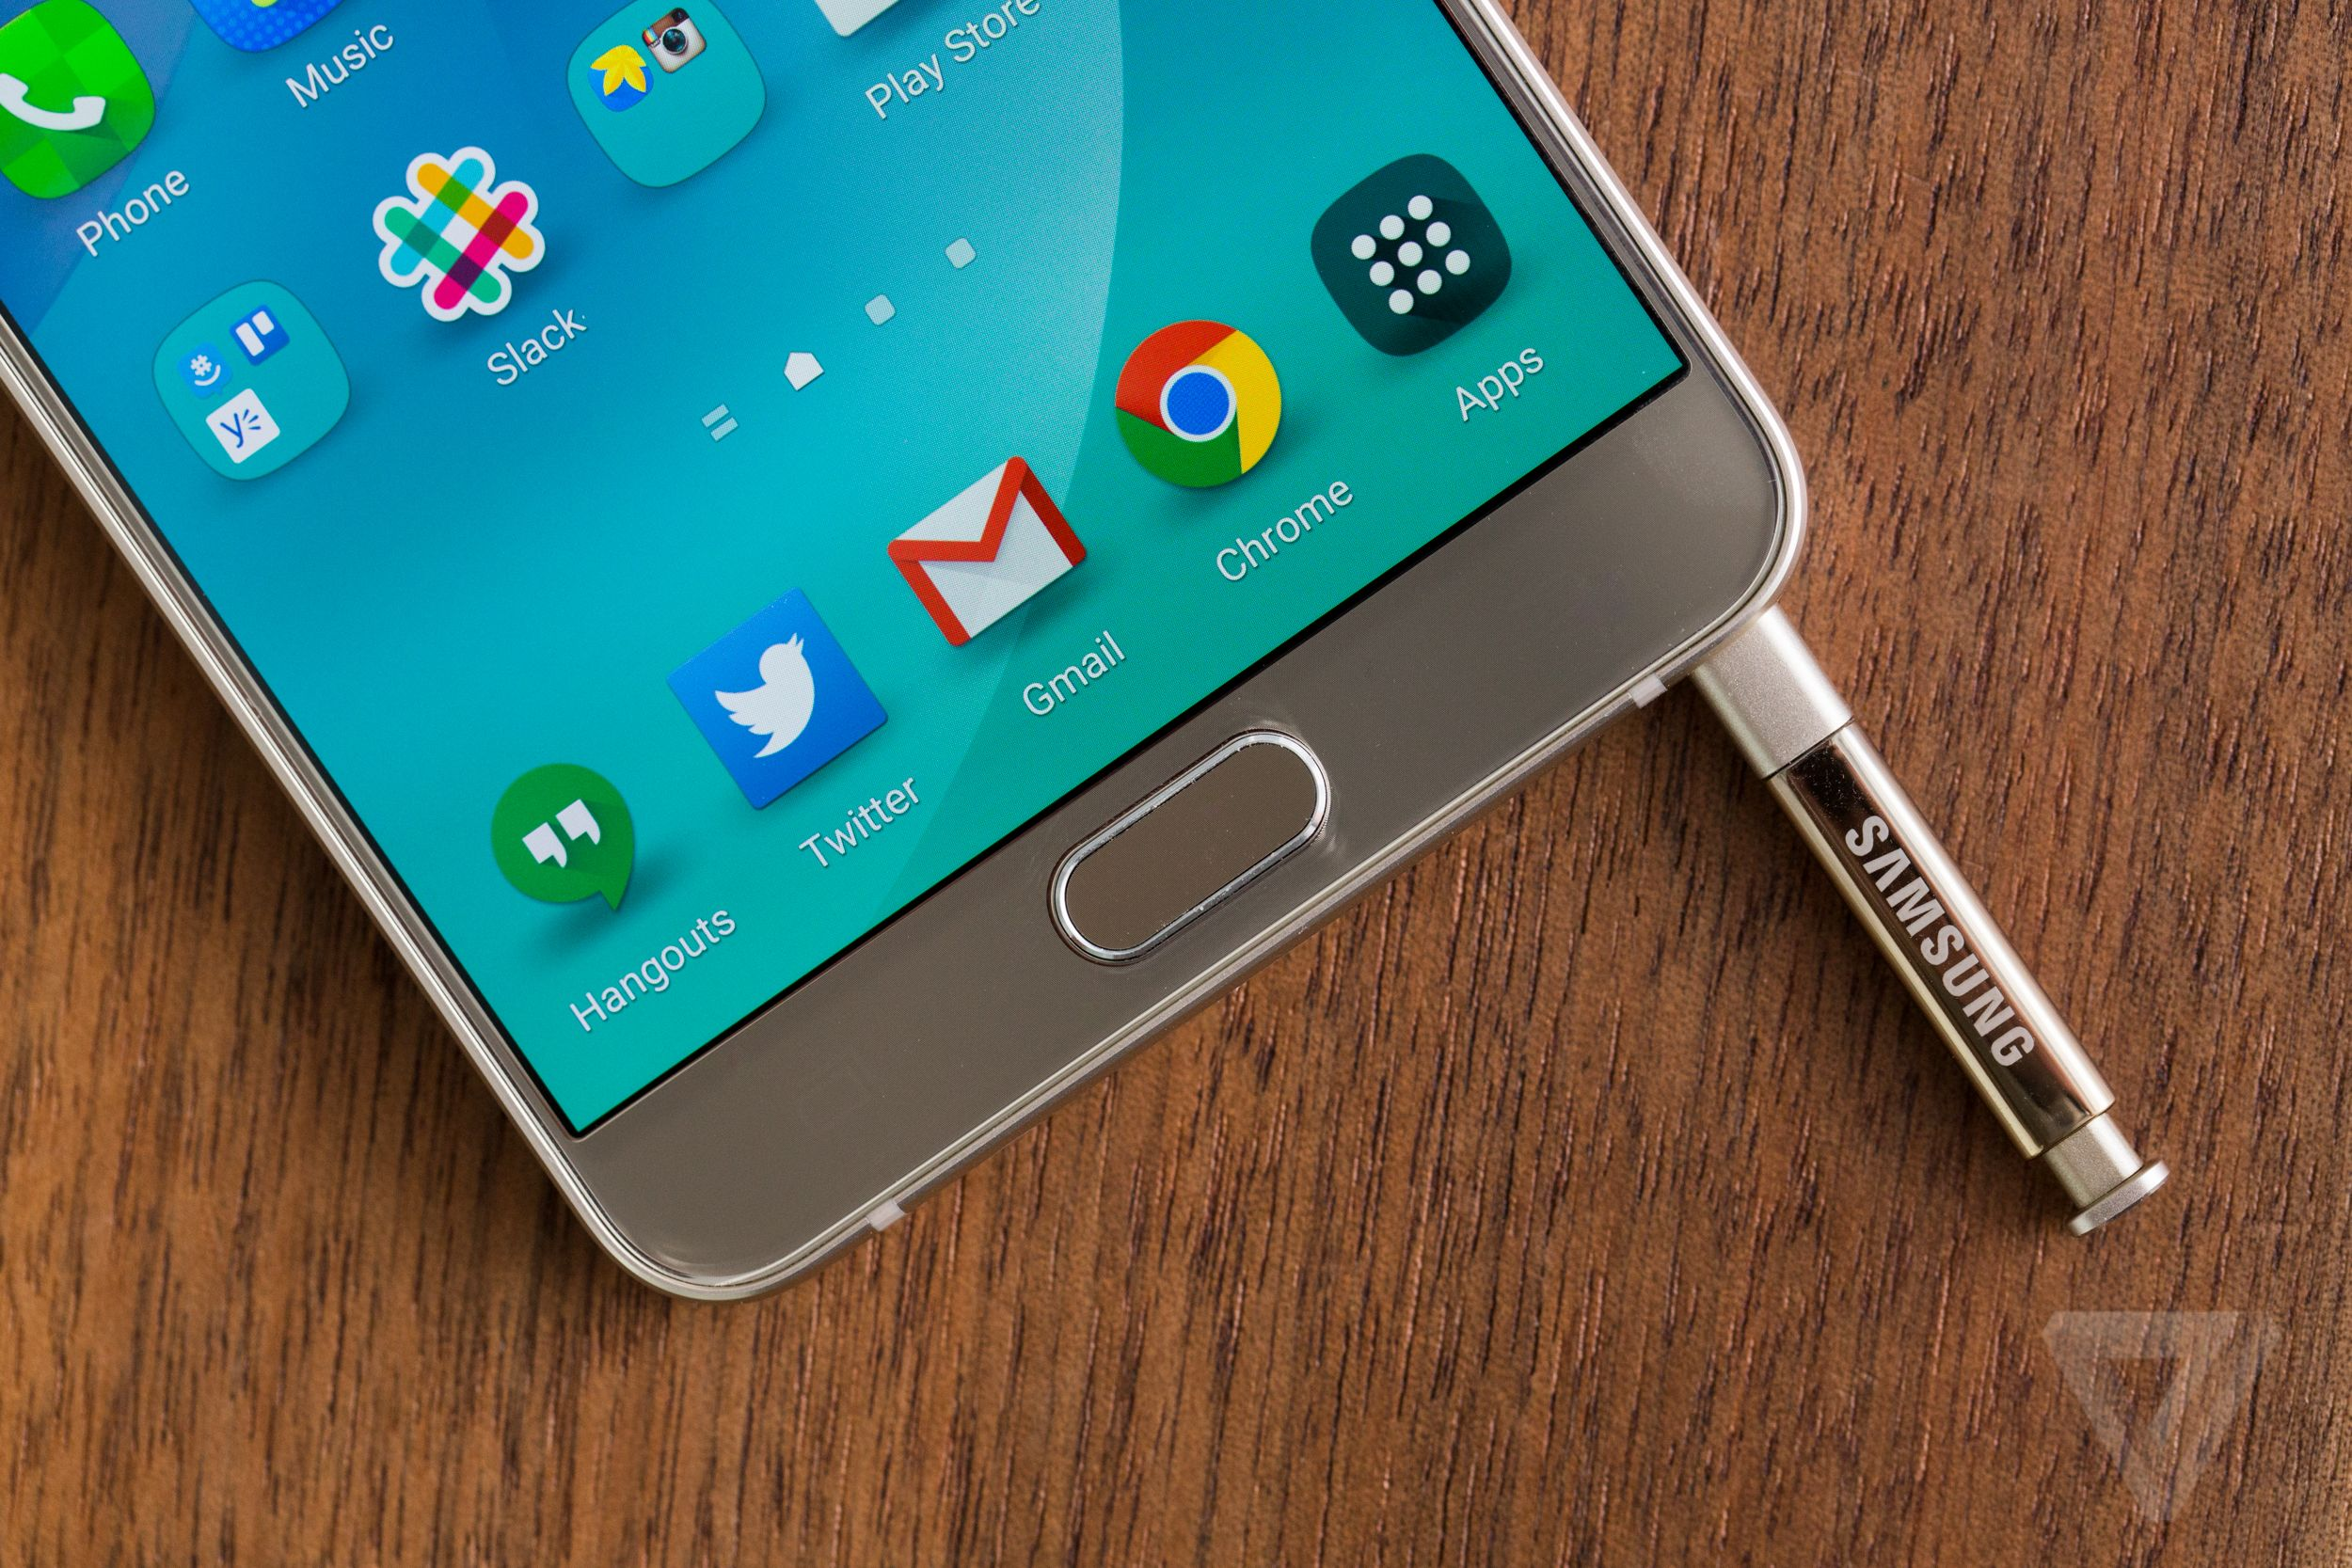 samsung-galaxy-note-5-review-2068.0